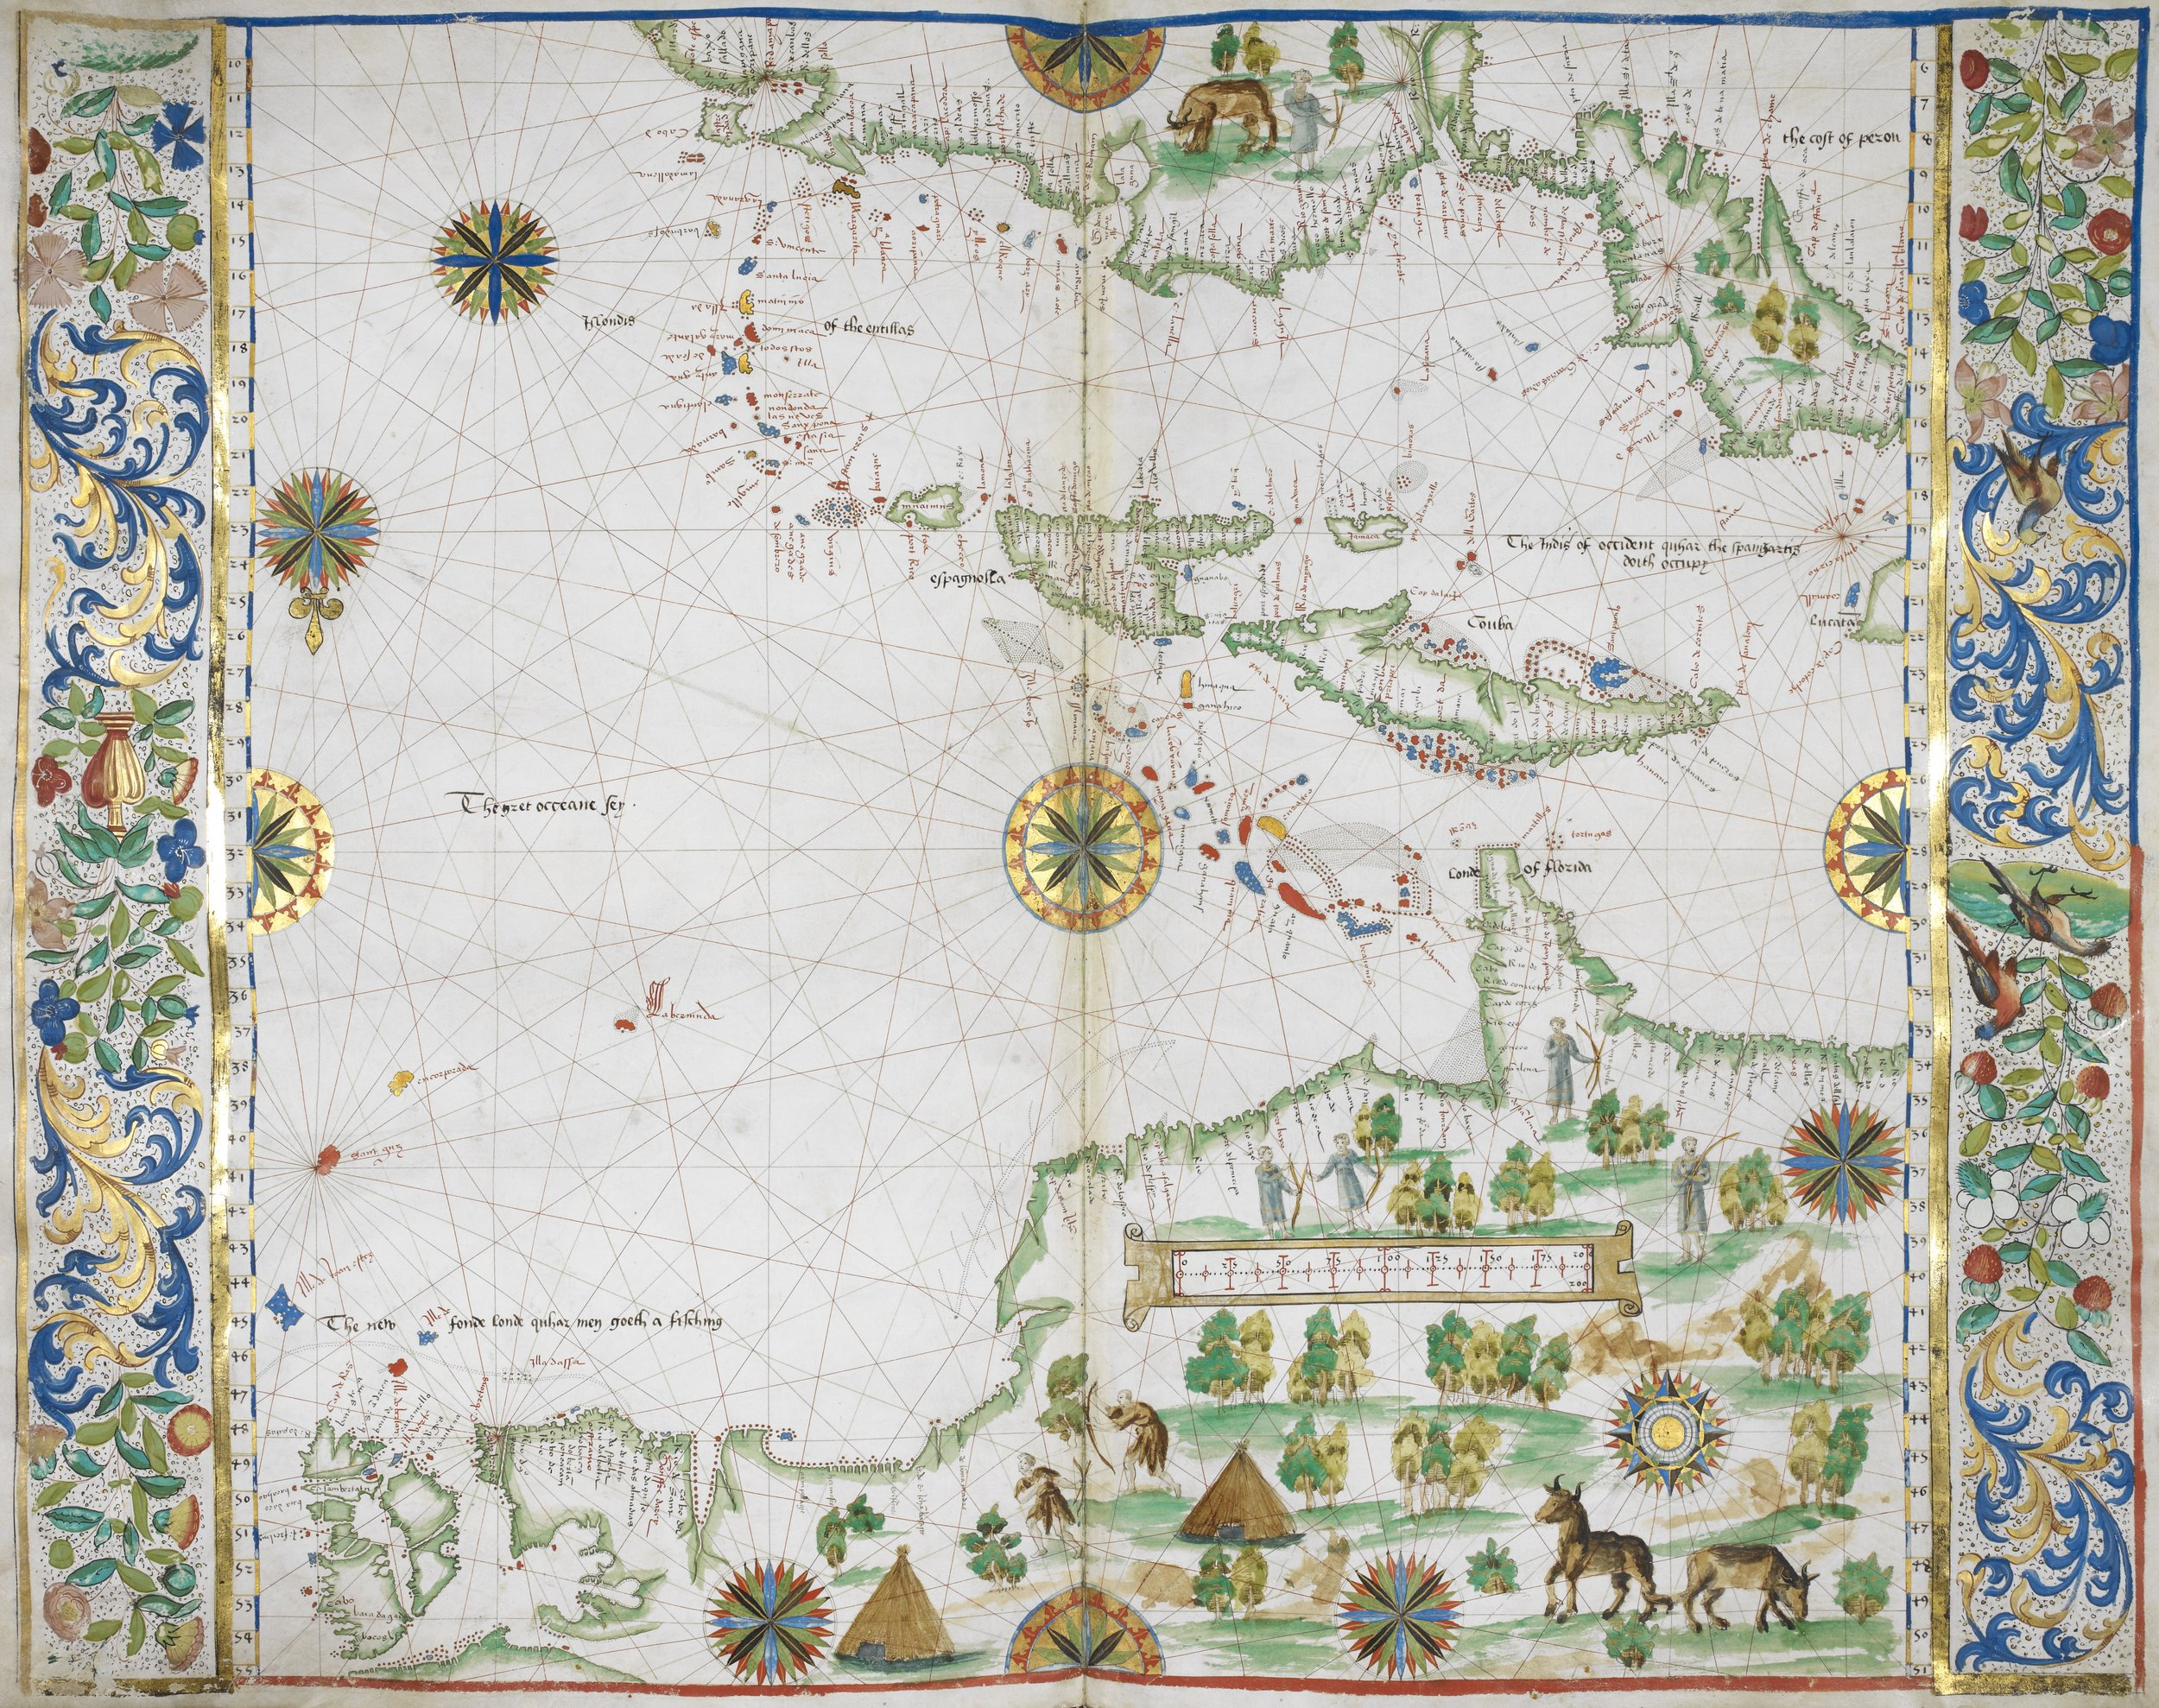 This map of the West Indies from 1542 is regarded as one of the British Library's finest treasures. Made with velum, and hand-painted in golds, blues and greens, it charts what is now the southern United States and the West Indies. Produced not for a mariner, but for an elite audience, the map had one purpose - to help a ruler conceptualise their world, in this case Francis I of France.